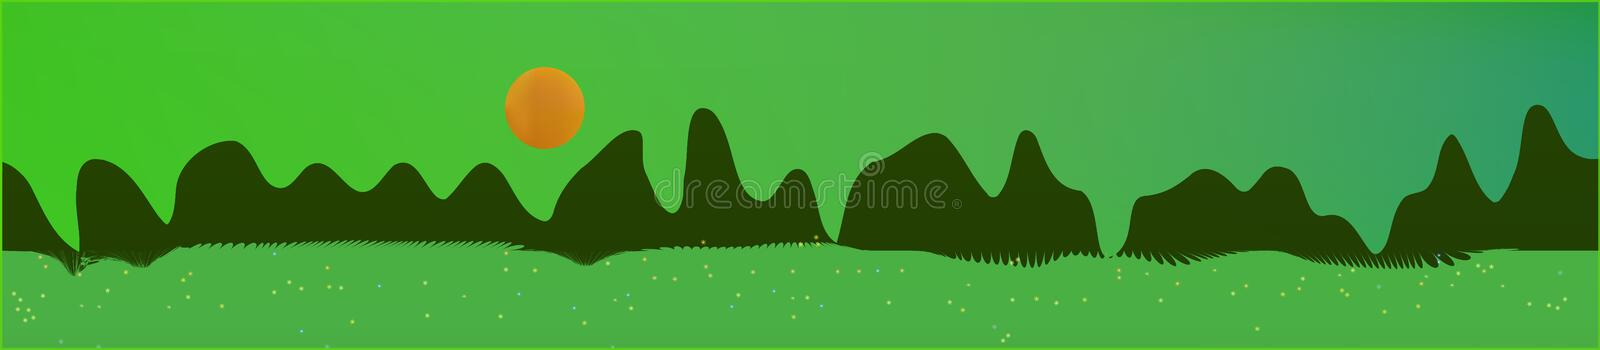 Green sky, and mountains landscape. Plain horizontal background illustration. Trendy fairy tale plain design. Breezy glass print fantasy. Horizon, light. Old vector illustration